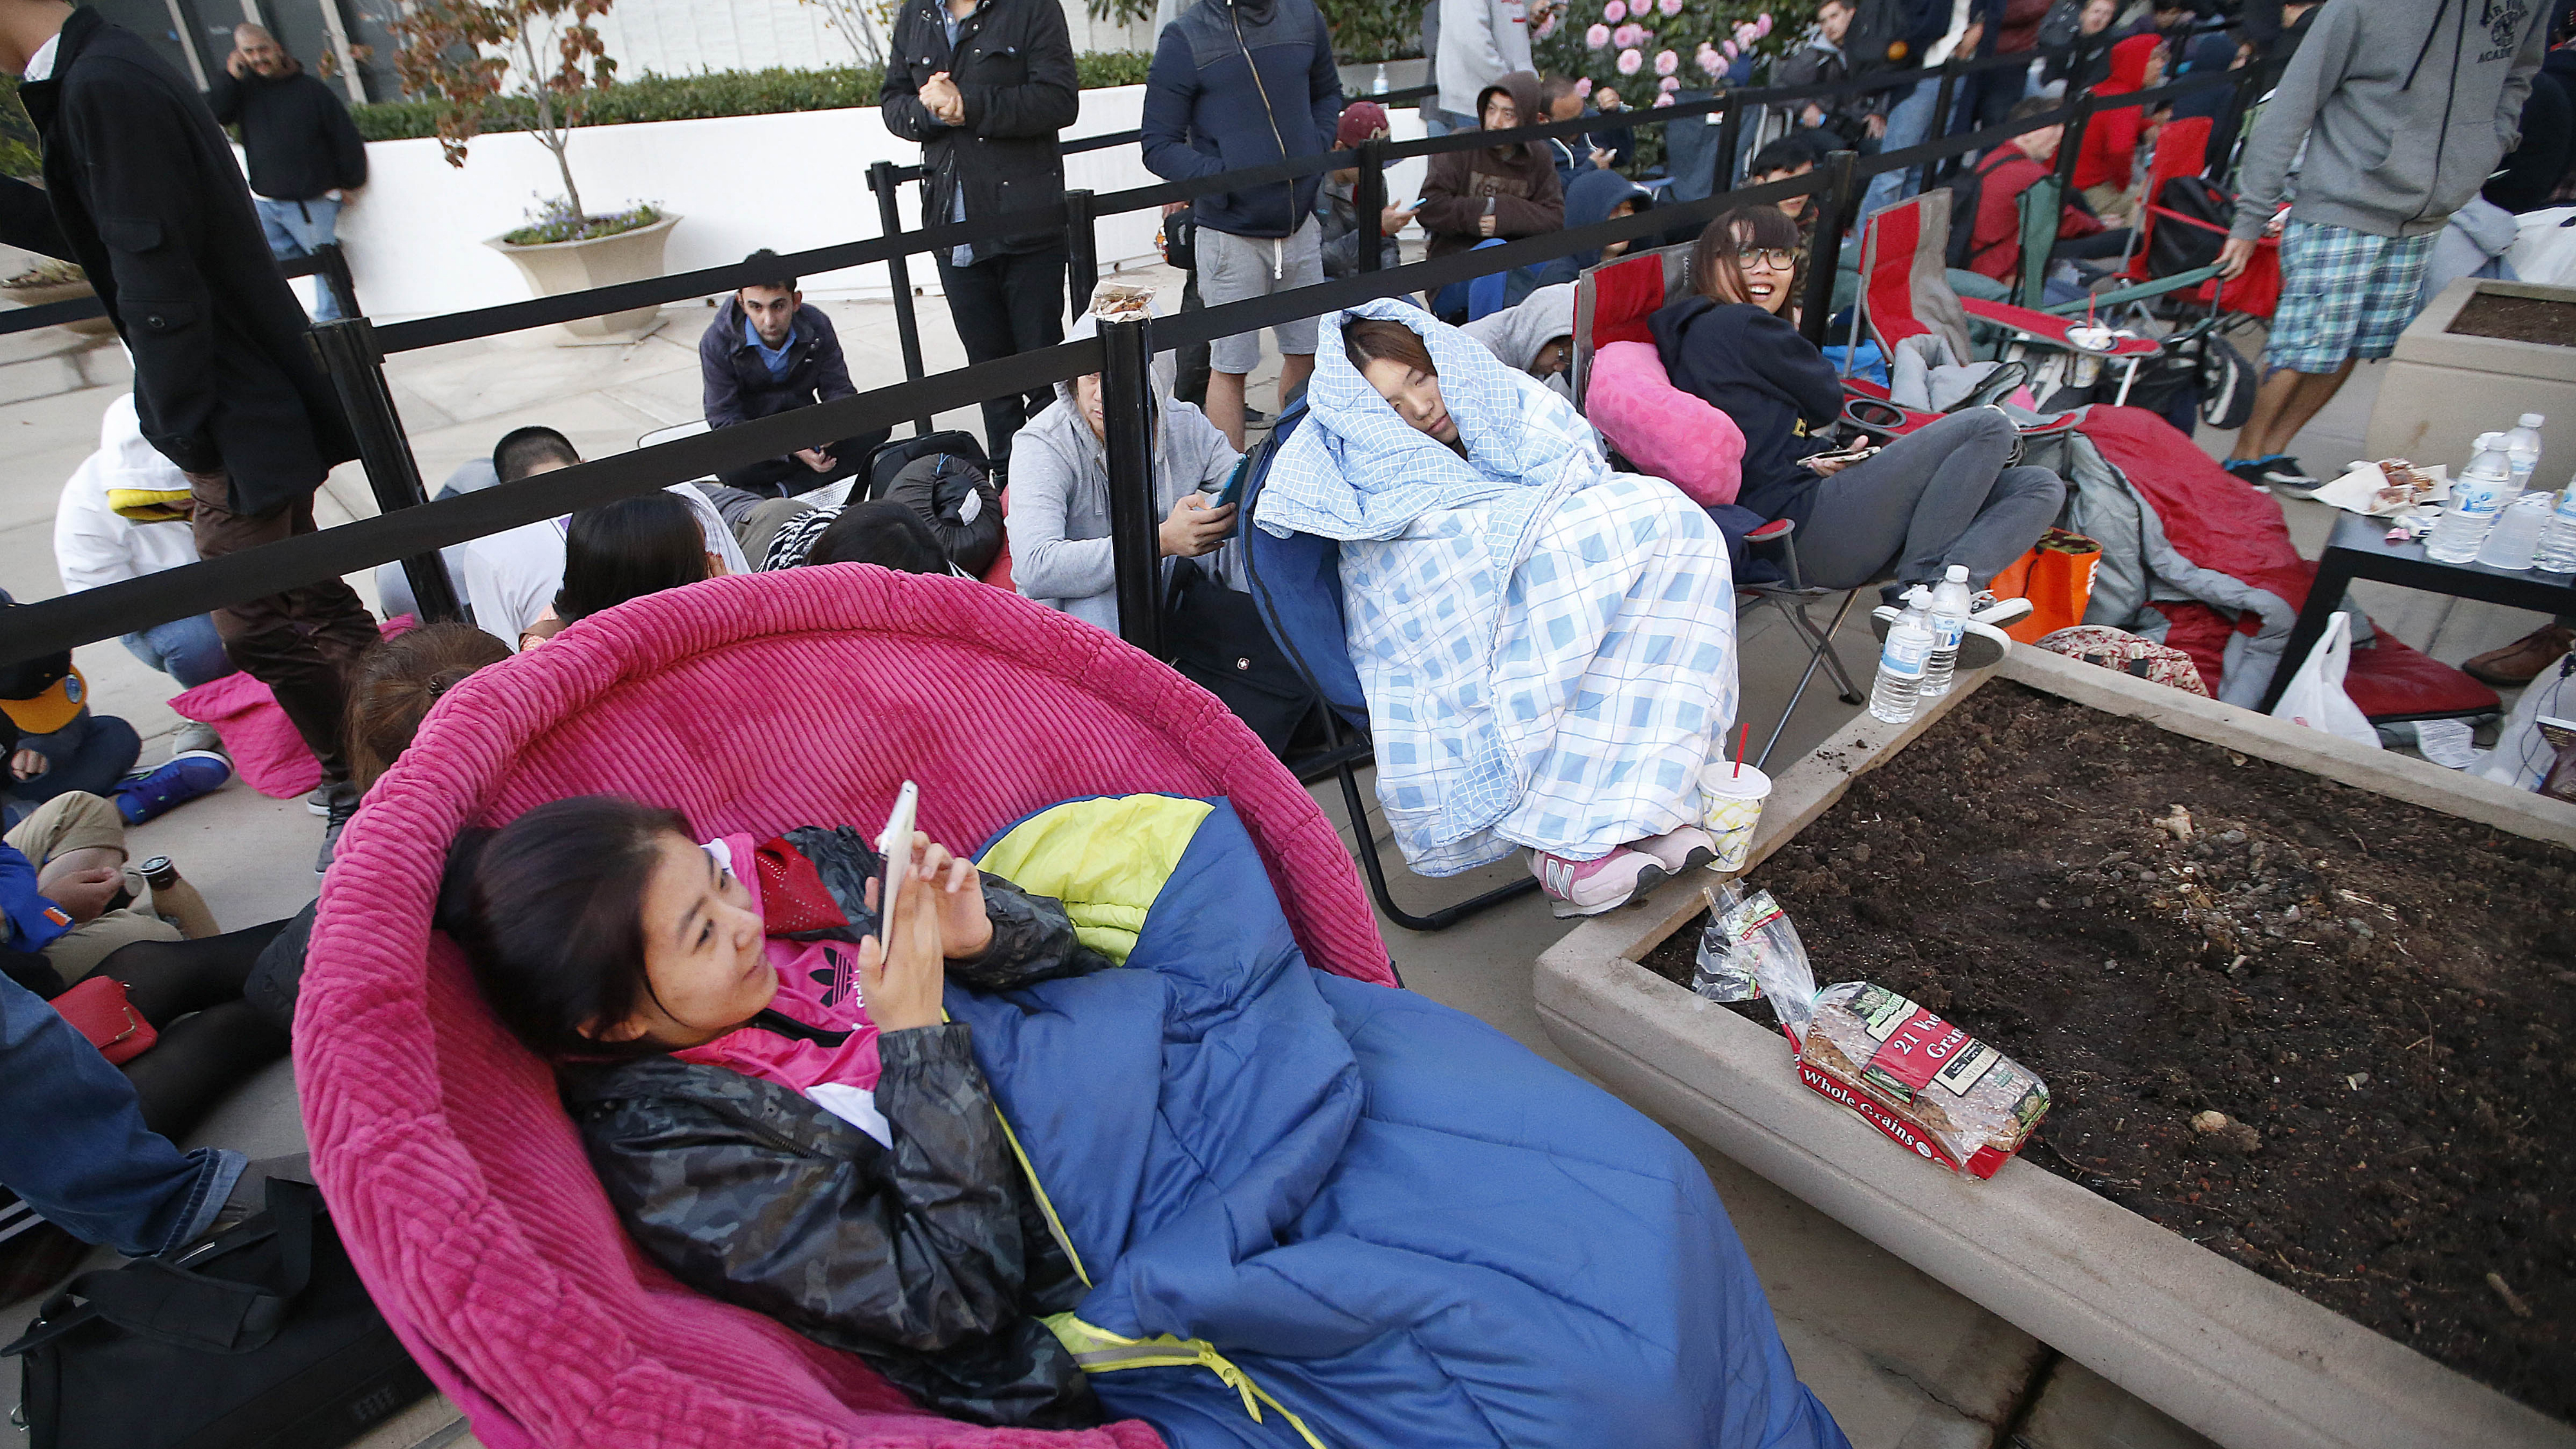 Yuki Lau, left, and friend Jianing Hong, center, wait in line for the opening of the Apple Store for the launch and sale of the new iPhone 6 on Friday, Sept 19, 2014 Palo Alto, Calif. (AP Photo/Tony Avelar)